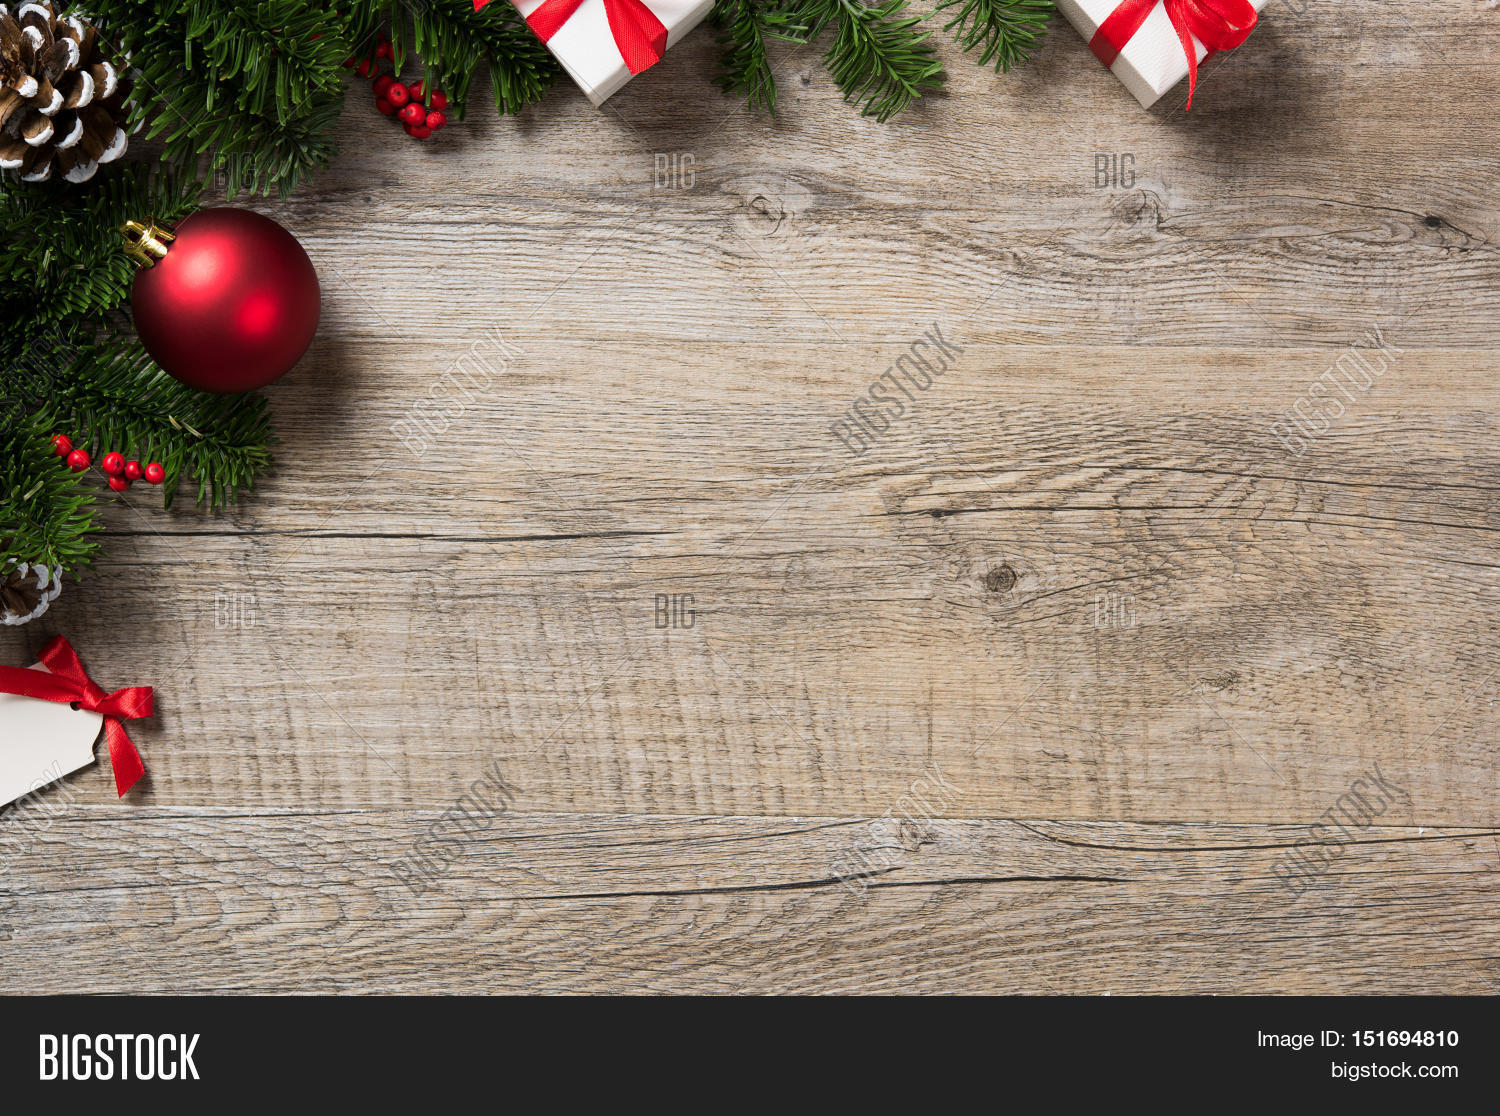 Christmas Top View.High Angle View Image Photo Free Trial Bigstock